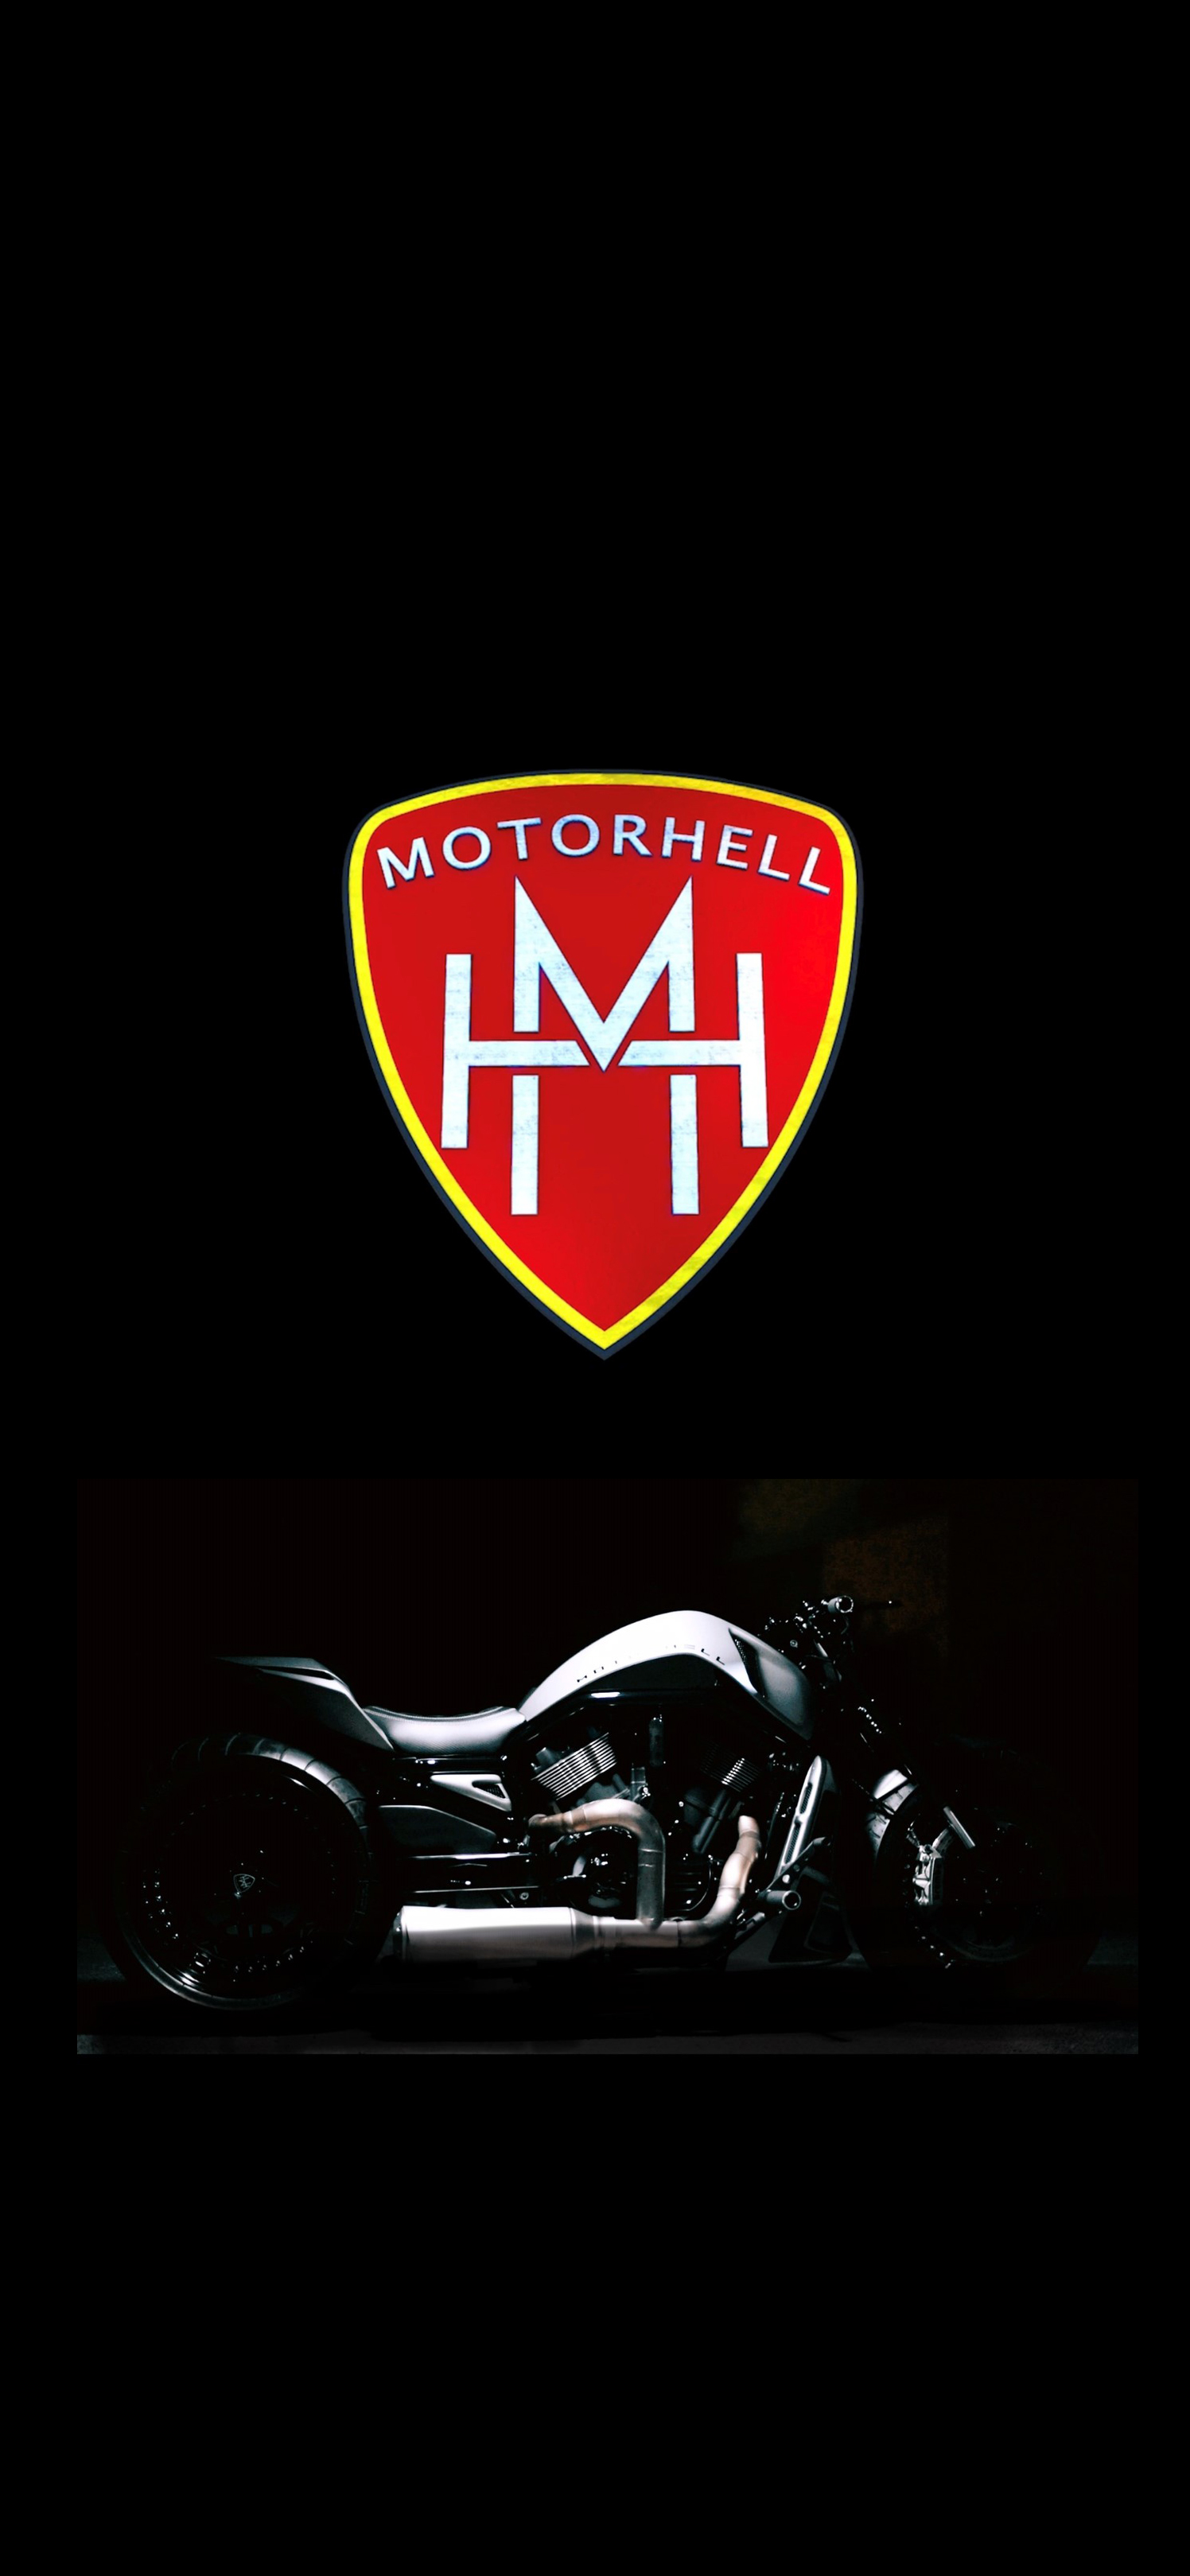 Motorhell mobile wallpaper logo V-Rod 2018